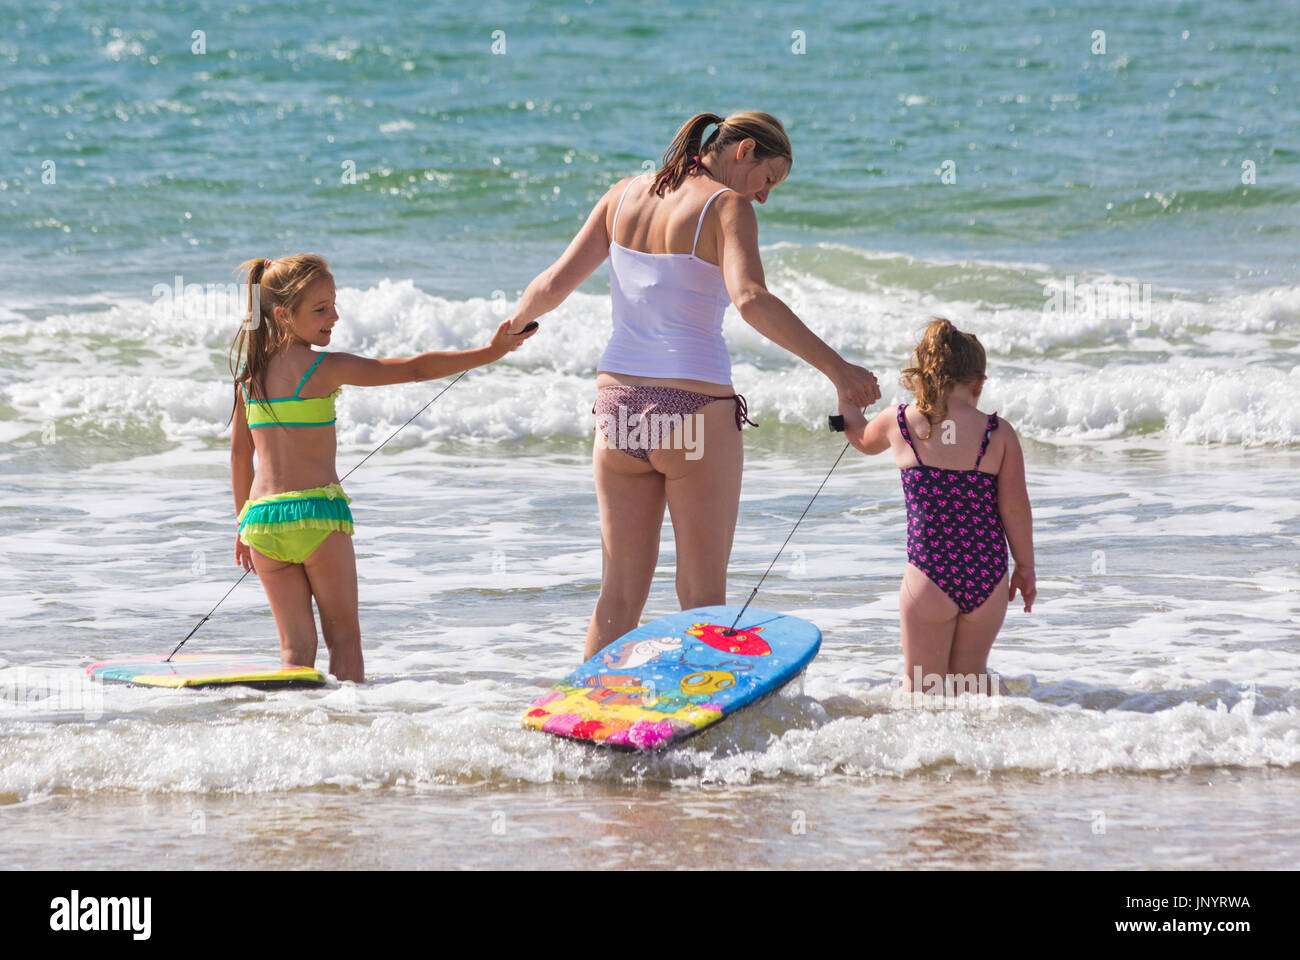 Bournemouth, Dorset, UK. 31st July, 2017. UK weather: after a weekend of mixed weather, a warm sunny start to the new week, as visitors head to the seaside to make the most of the sunshine. Mia, aged 6, and Bella, aged 4, enjoy playing with their body boards in the sea. Credit: Carolyn Jenkins/Alamy Live News - Stock Image